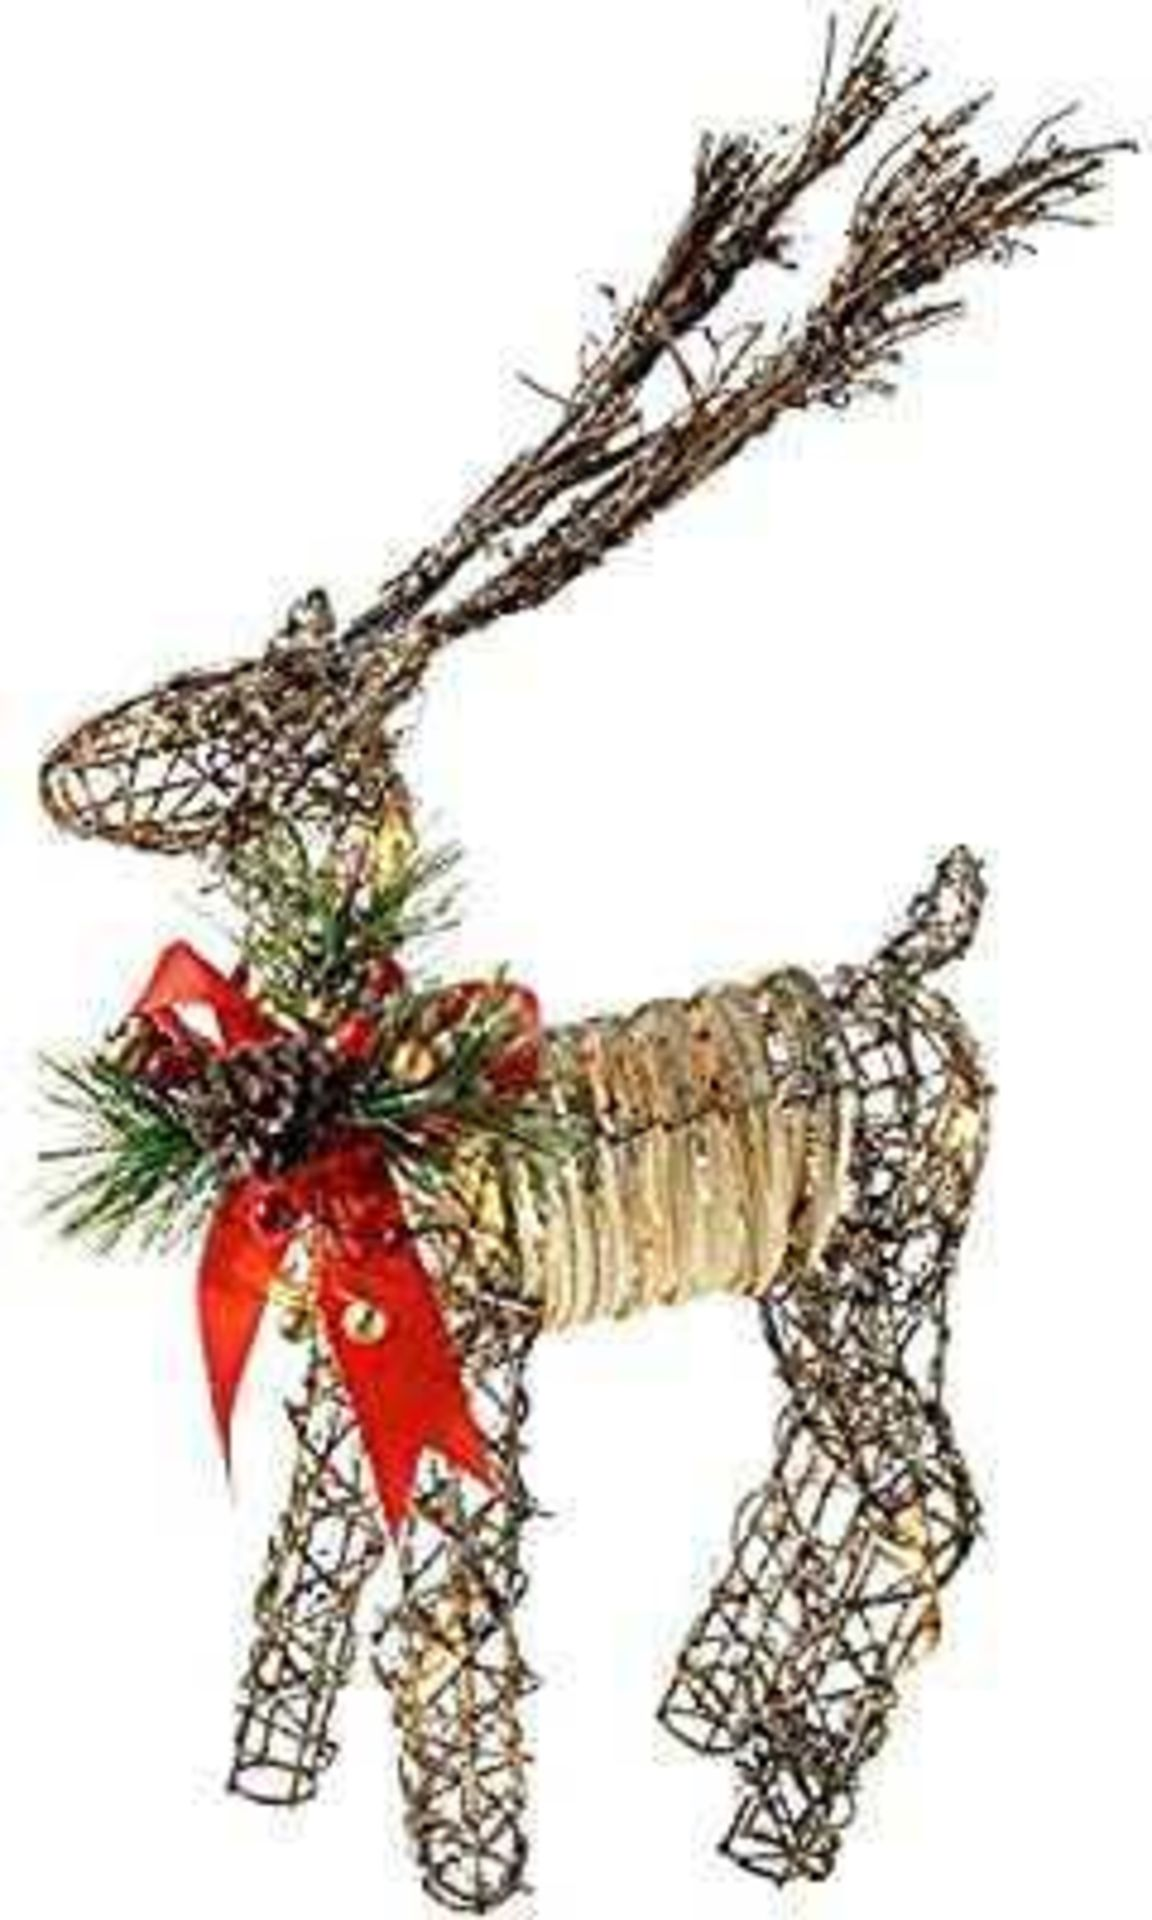 RRP £30 Lot To Contain Werchristmas Pre-Lit Rattan Warm White Led Reindeer With Red Ribbon, Snow And